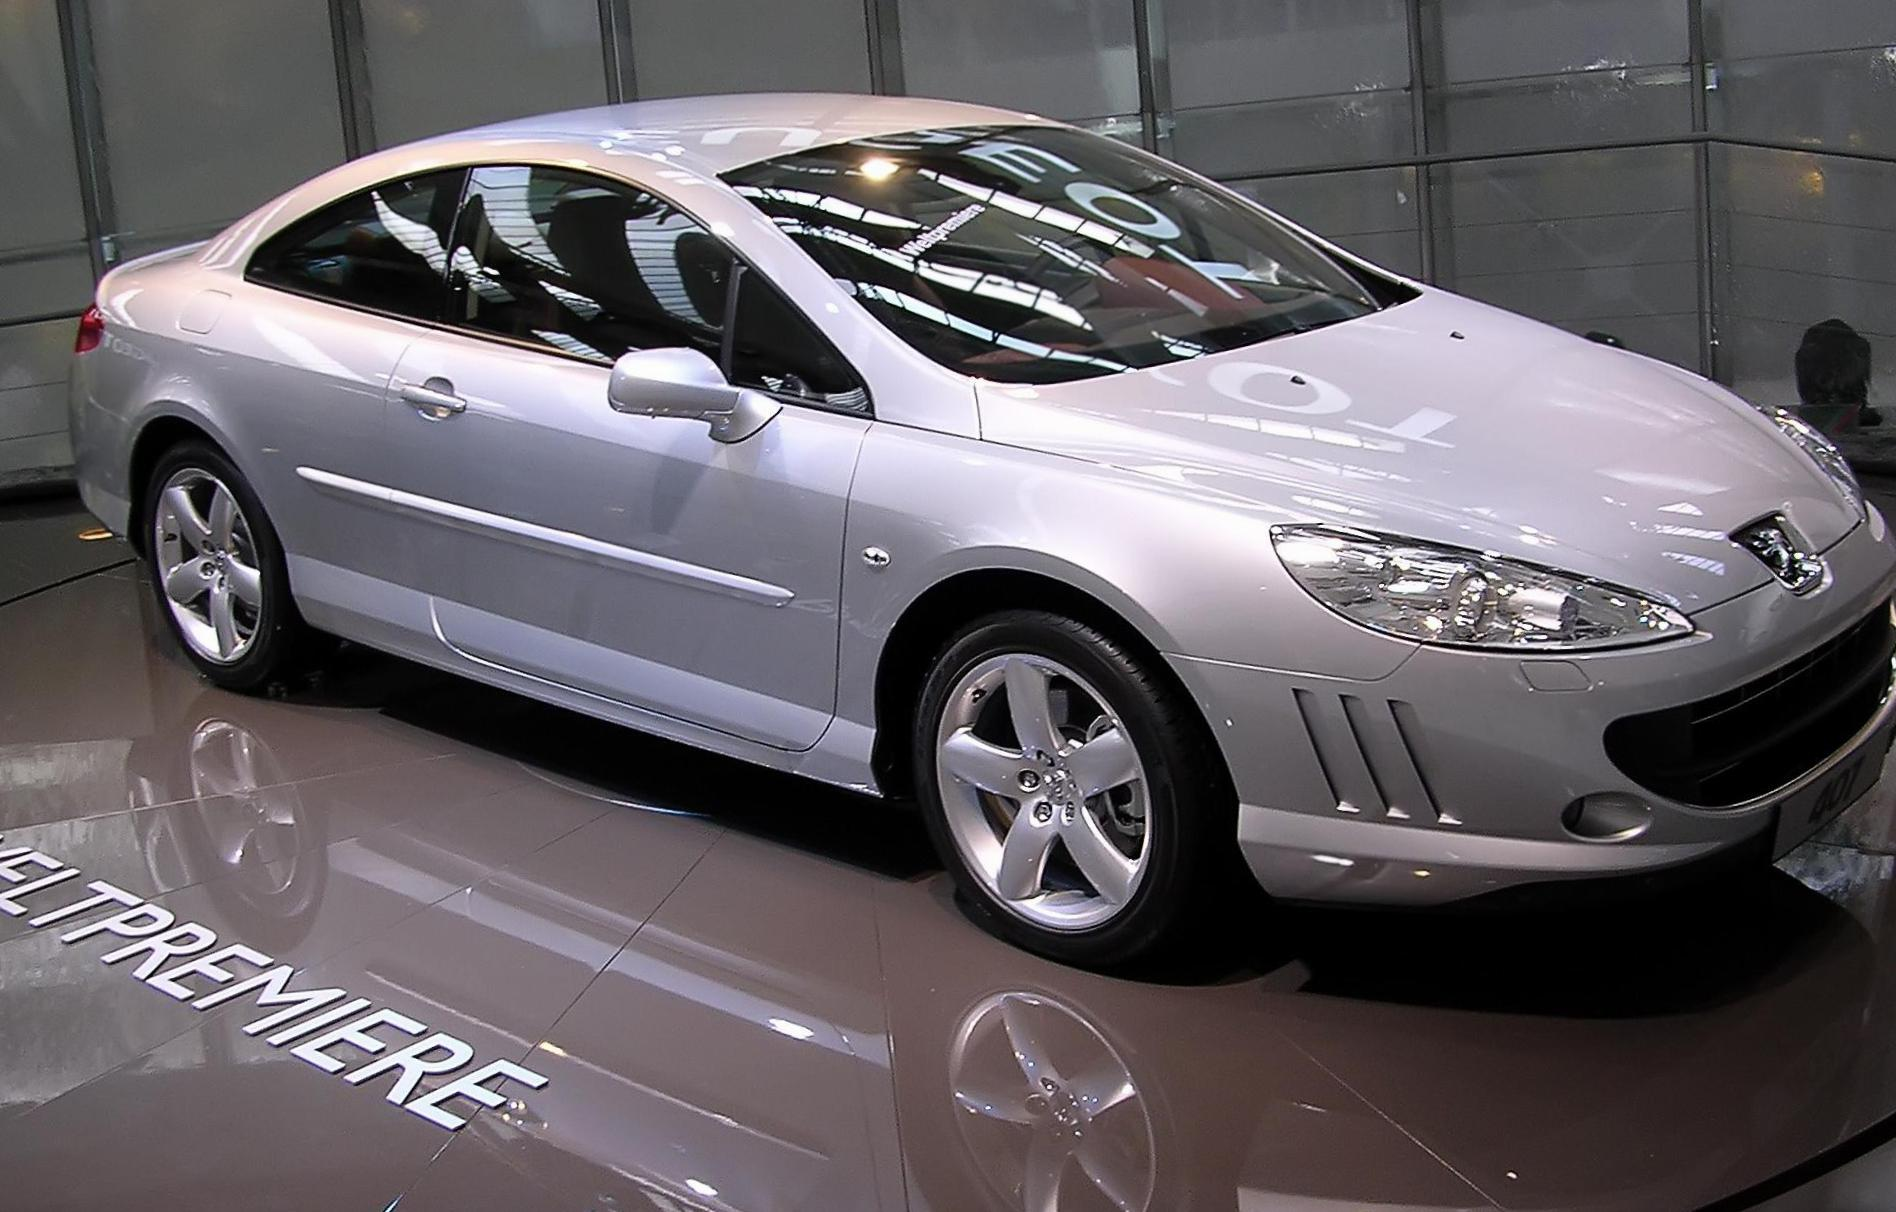 Coupe Peugeot Peugeot 407 Coupe Photos And Specs Photo 407 Coupe Peugeot New